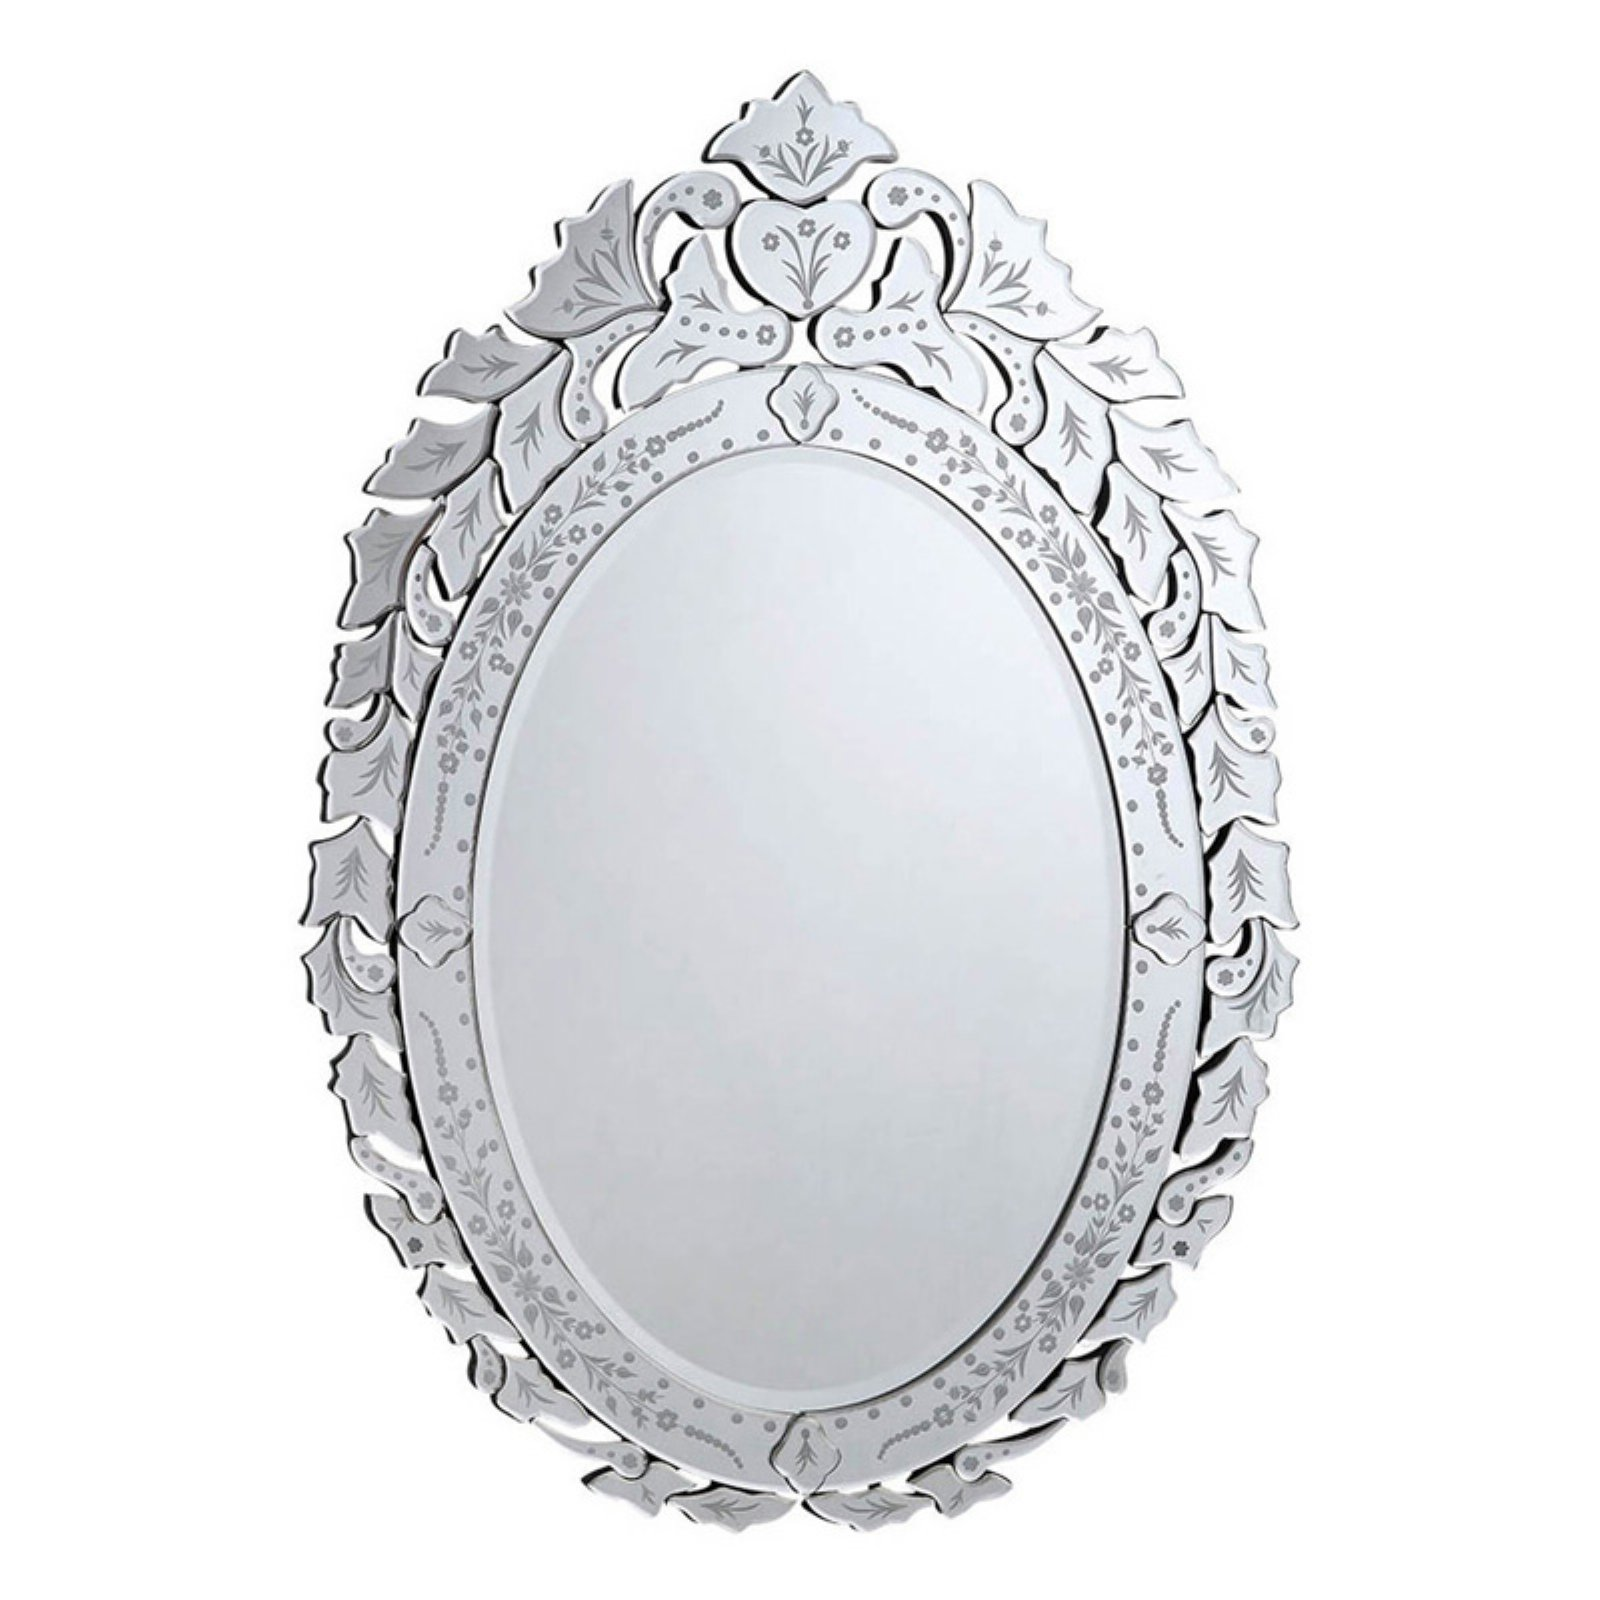 Elegant Furniture & Lighting Venetian Wall Mirror - 32.75W x 44.5H in.